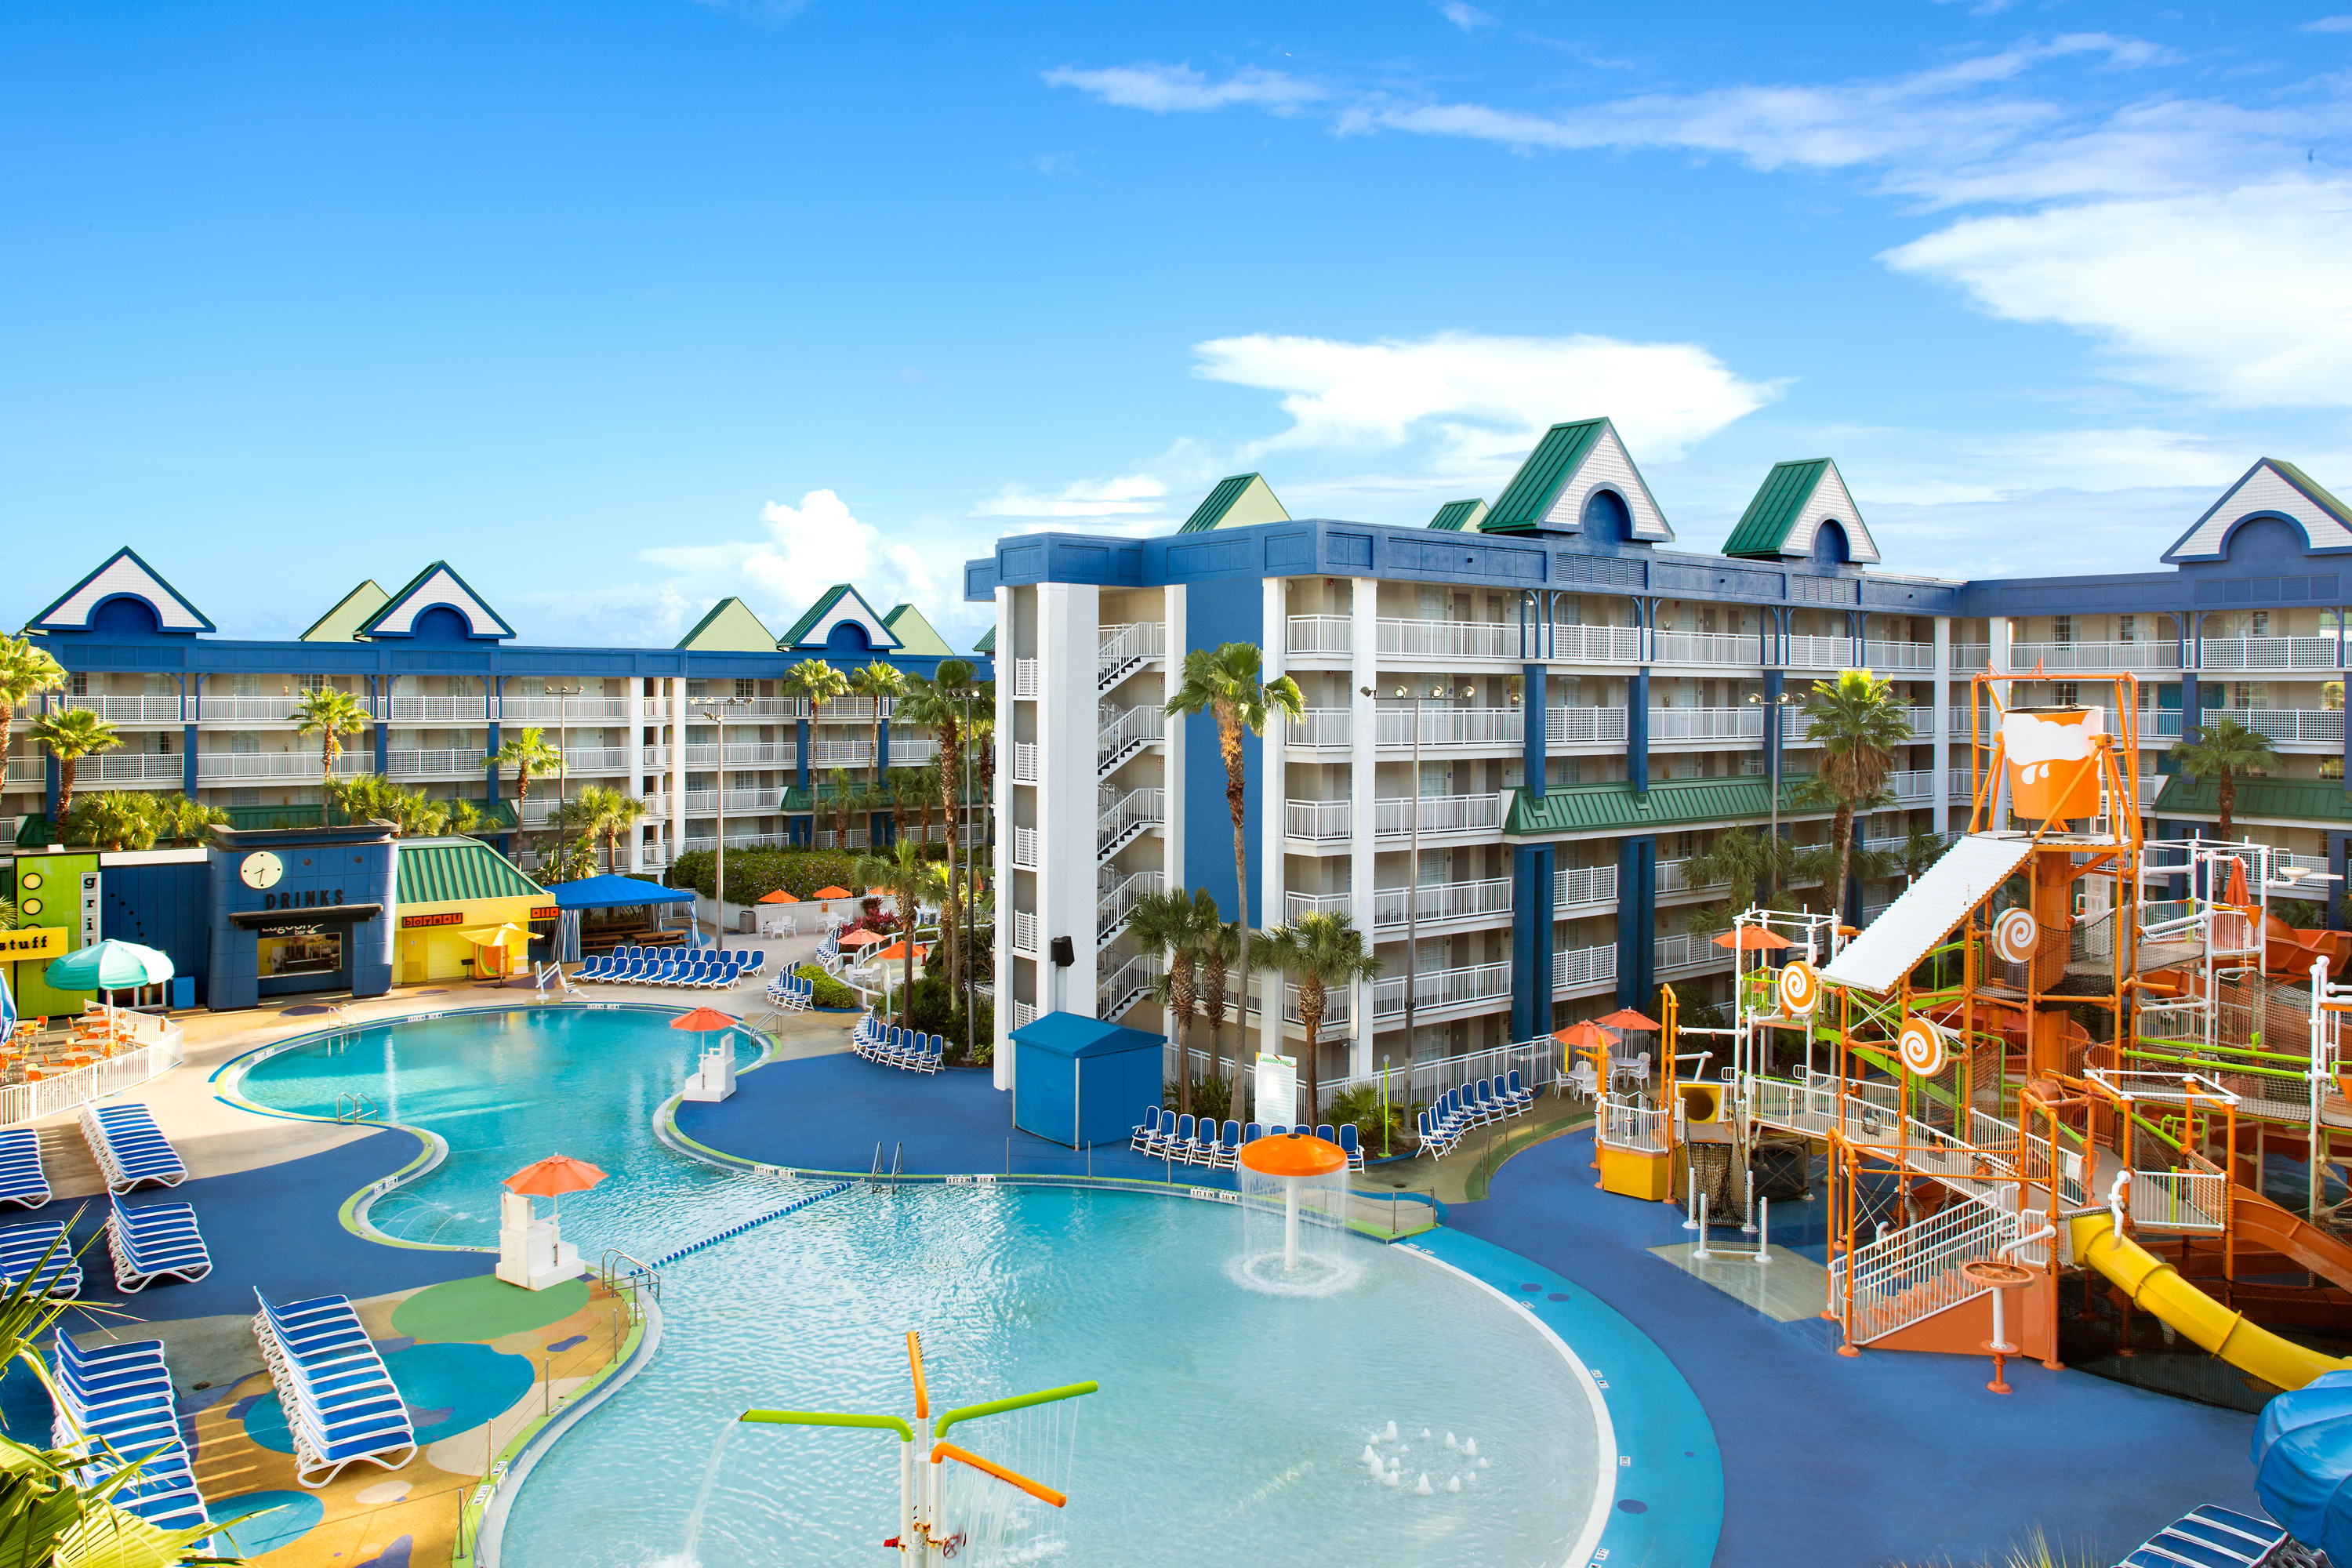 Cash Pool Flughafen München The Coolest Hotel Pools For Kids In Orlando Images Wheretraveler